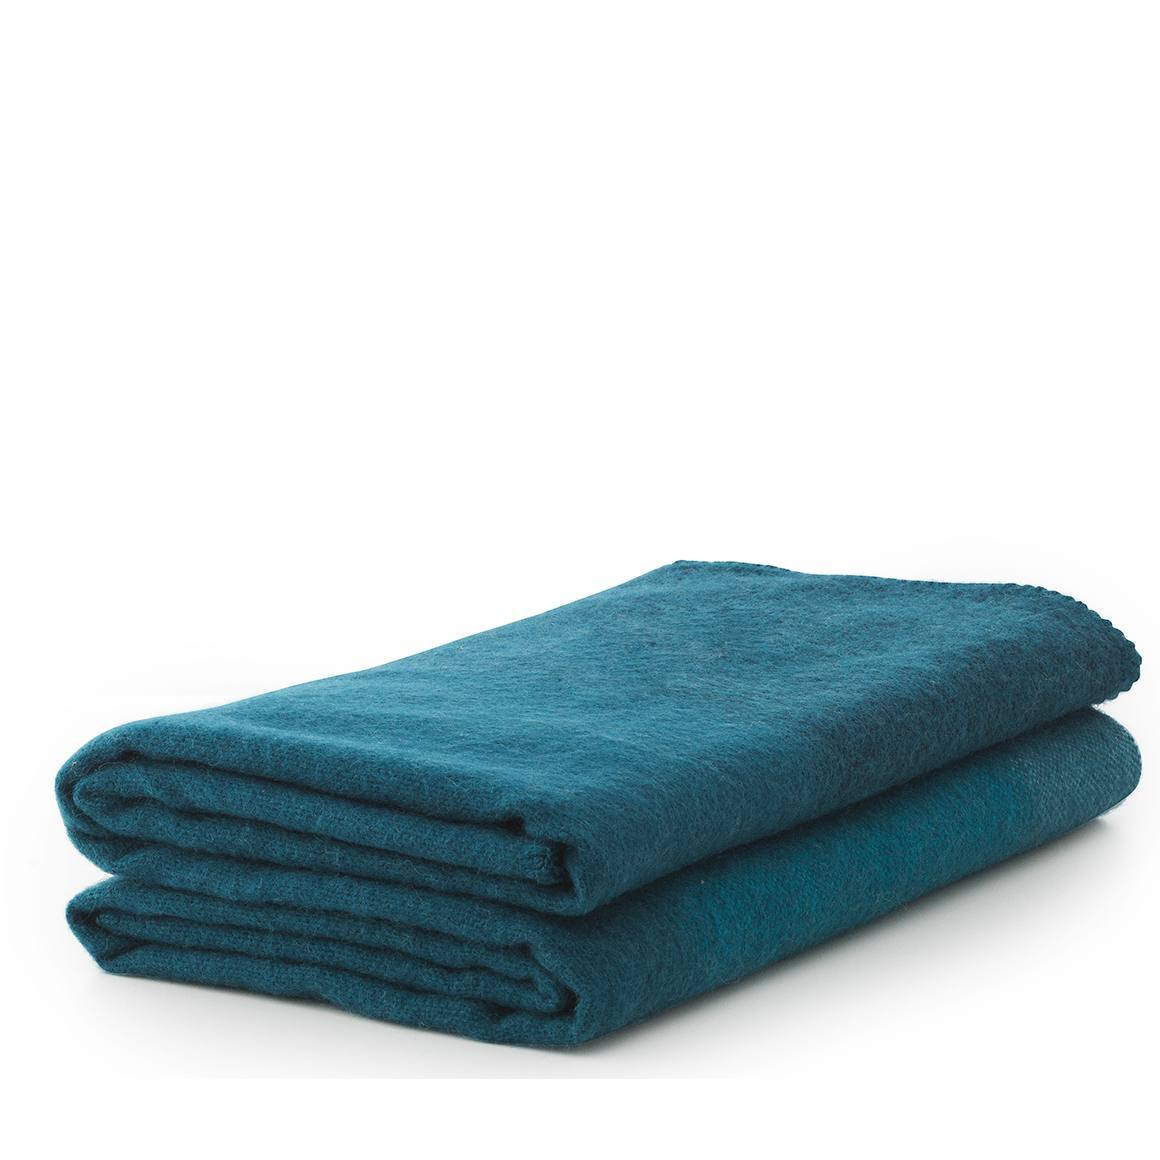 Normann Copenhagen Tint Throw - Eclectic Cool  - 10